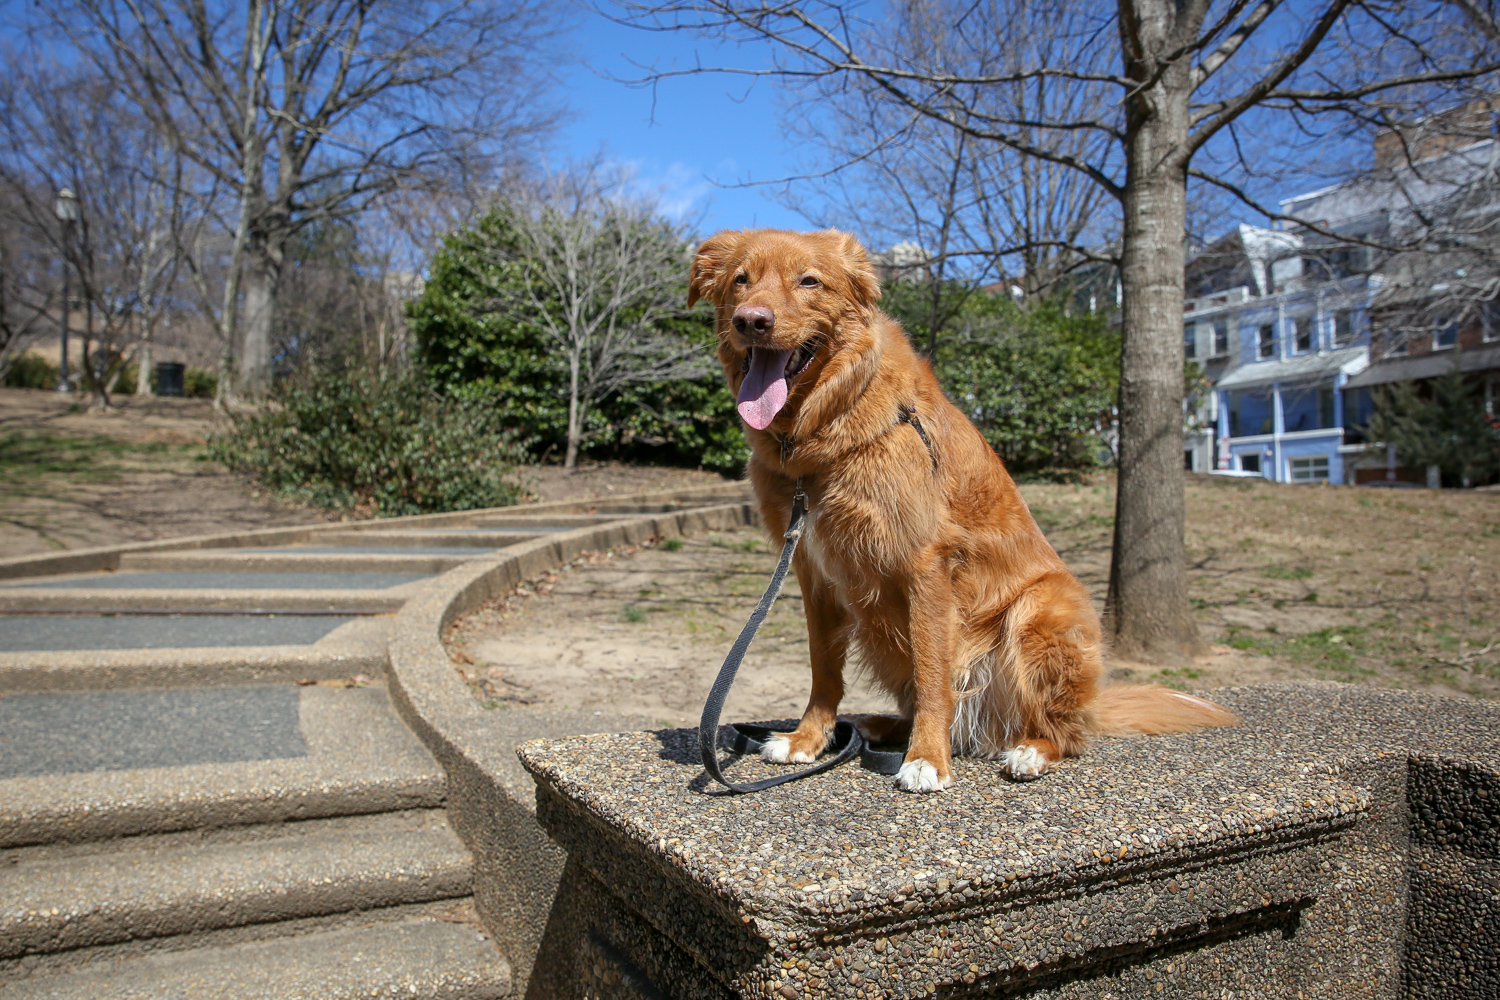 Meet Rusty, a four-year-old Nova Scotia Duck Tolling Retriever. In case you're not familiar with that particular breed (we weren't!) here's a little background: 'Toll' means to lure, and the breed is a hunting breed, as they lure prey into sight for the hunting human companion -- birds are attracted to the color of their coat. Rusty moved from Seattle to the D.C. area with his humans last fall, and seems to be adapting quite well. Rusty loves food (he'll do just about any trick for a treat) and tennis balls. When there is a tennis ball in sight, nothing is more important to him; he could be with a ton of other dogs, there could even be a juicy bone laying around, and he'd prefer the tennis ball. He also enjoys being active, particularly going on runs, hikes and swims. Rusty is terrified of sneezes and will run away from you if you sneeze, or even if you take a deep breath like you are about to sneeze. If you or someone you know has a pet you'd like featured, email us at dcrefined@gmail.com or tag #DCRUFFined and your furbaby could be the next spotlighted! (Image: Amanda Andrade-Rhoades/ DC Refined)